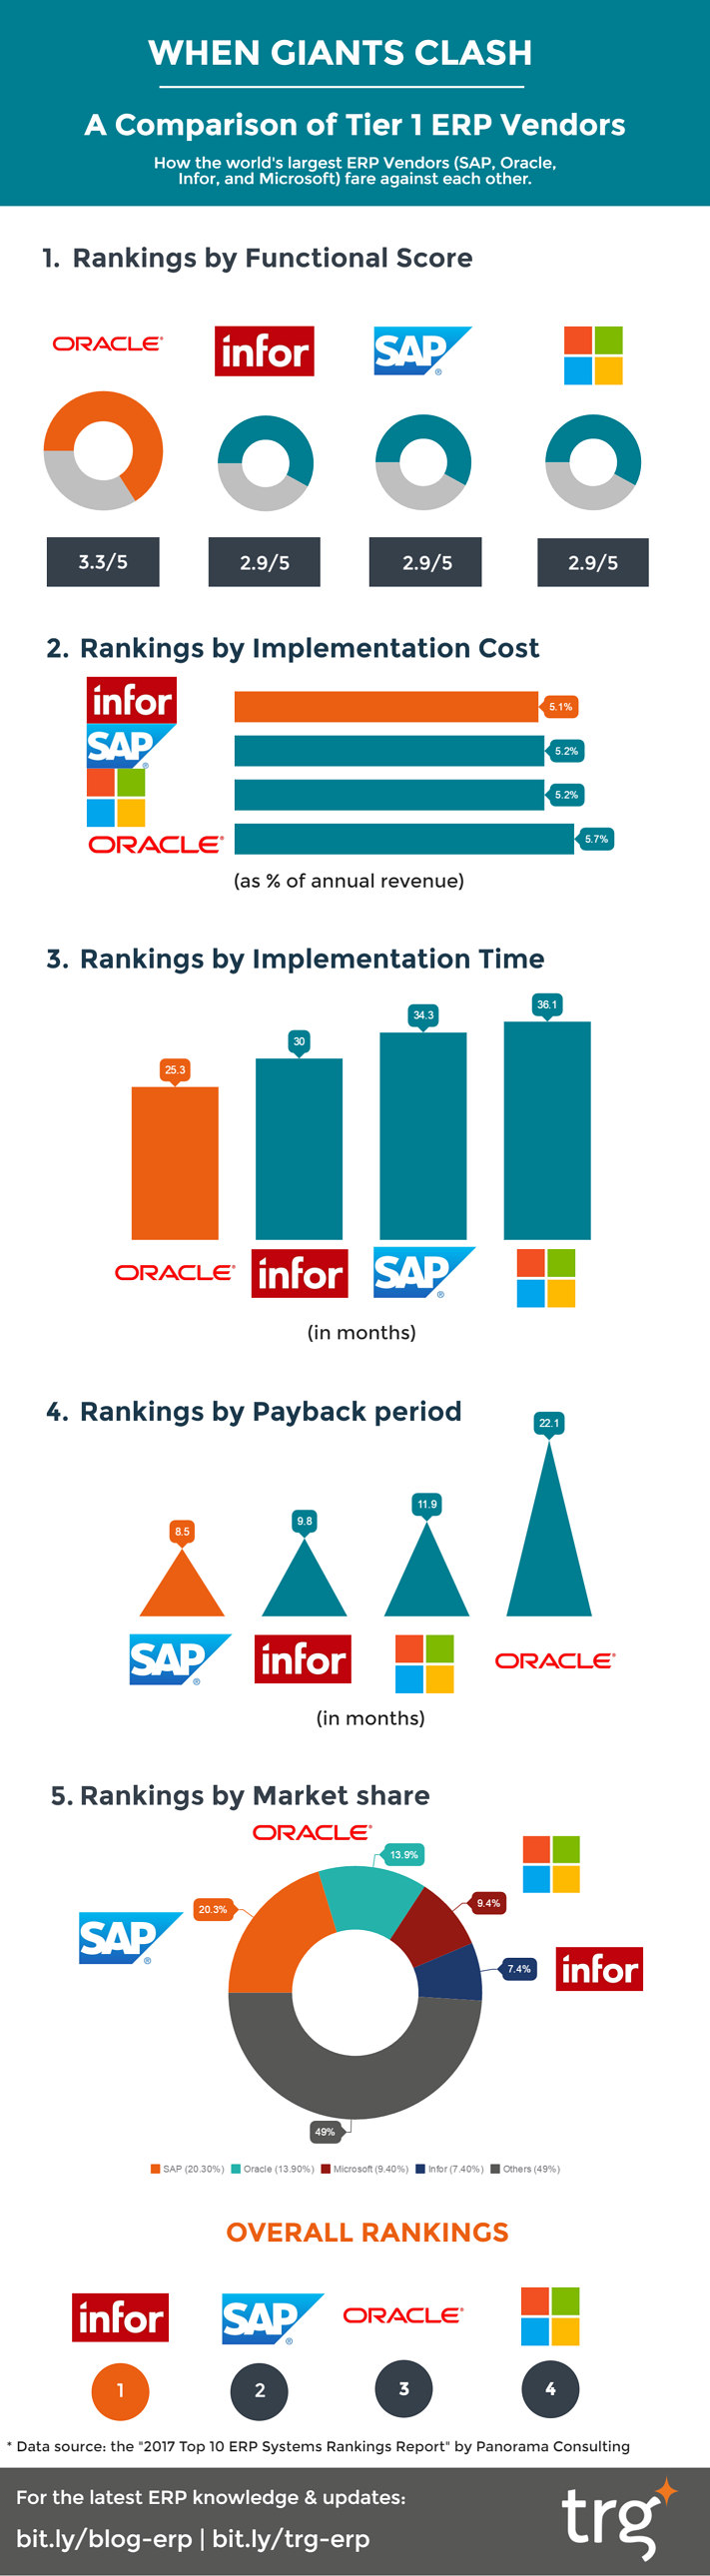 A comparison of tier 1 ERP vendors: SAP, Oracle, Infor and Microsoft Dynamics